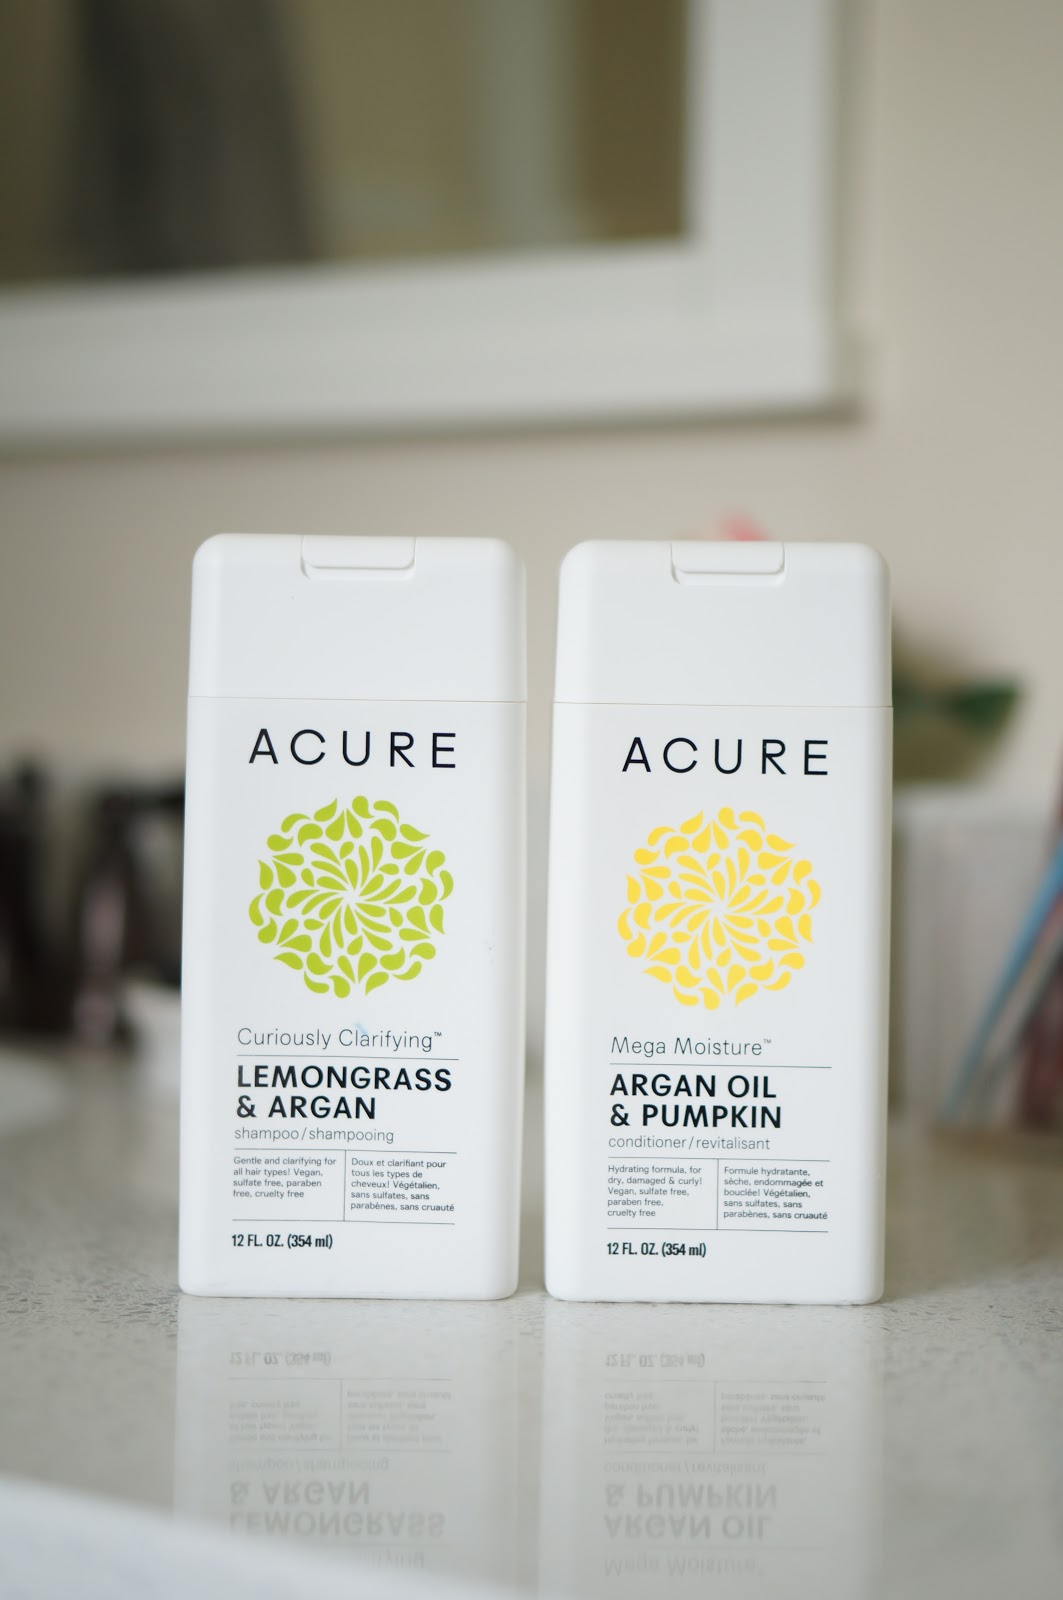 Popular North Carolina style blogger Rebecca Lately shares her cruelty free hair care routine. Check out the Acura, Amika & Yarok products that she uses!